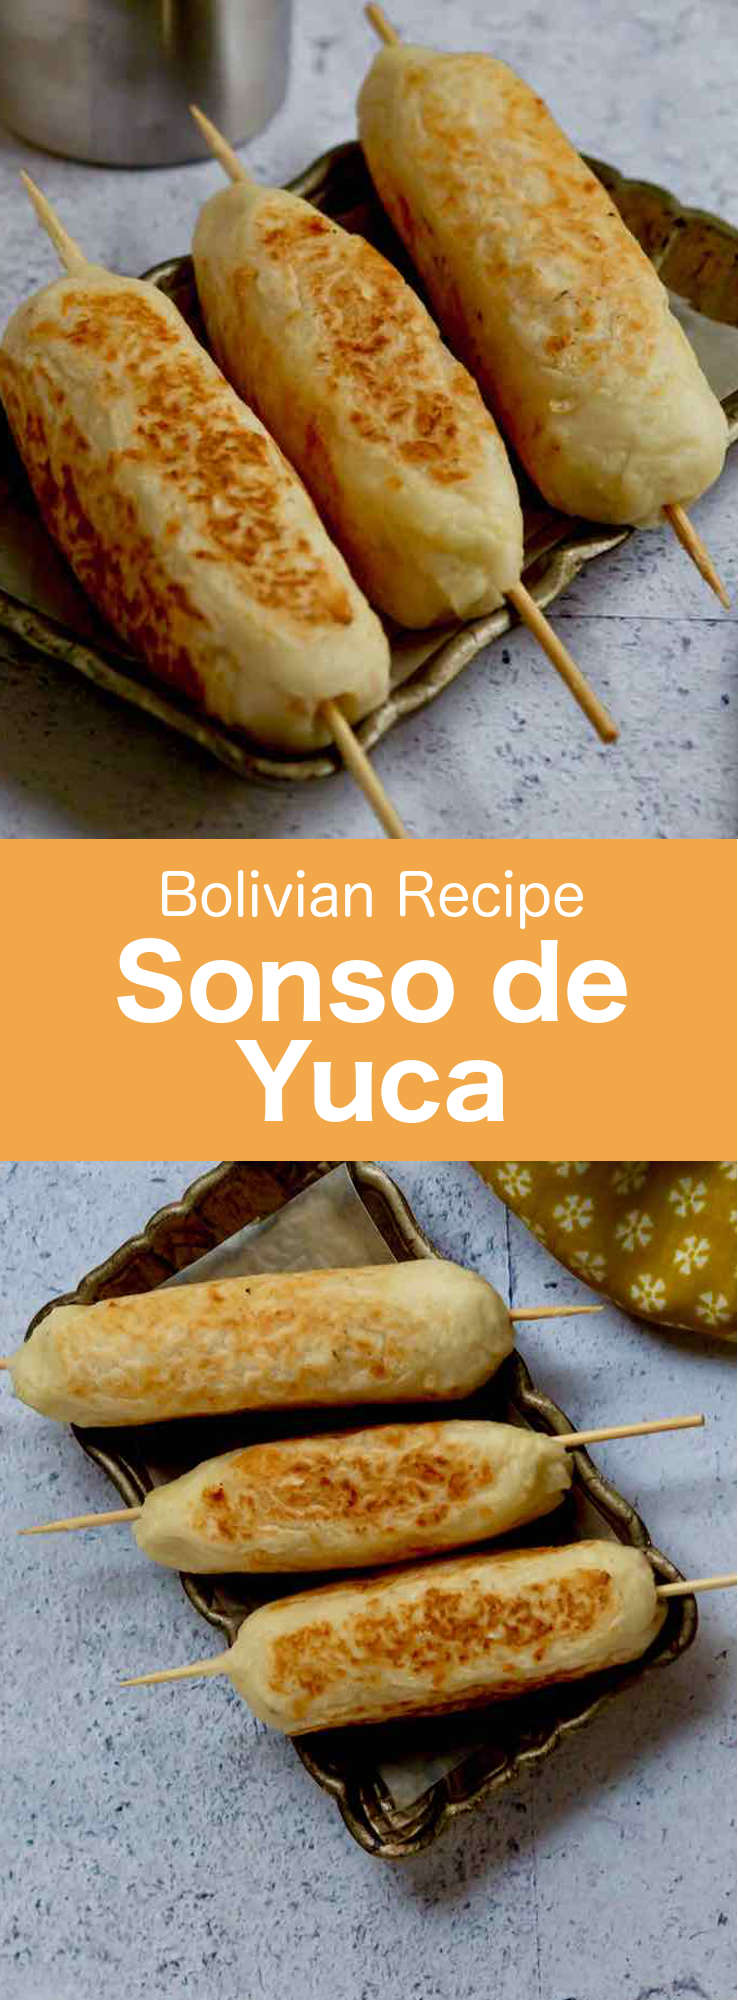 Sonso de yuca is a popular Bolivian dish made from cassava mash and grated cheese set around a skewer, which can be grilled, baked, or fried. #Bolivia #BolivianCuisine #BolivianFood #BolivianRecipe #WorldCuisine #196flavors